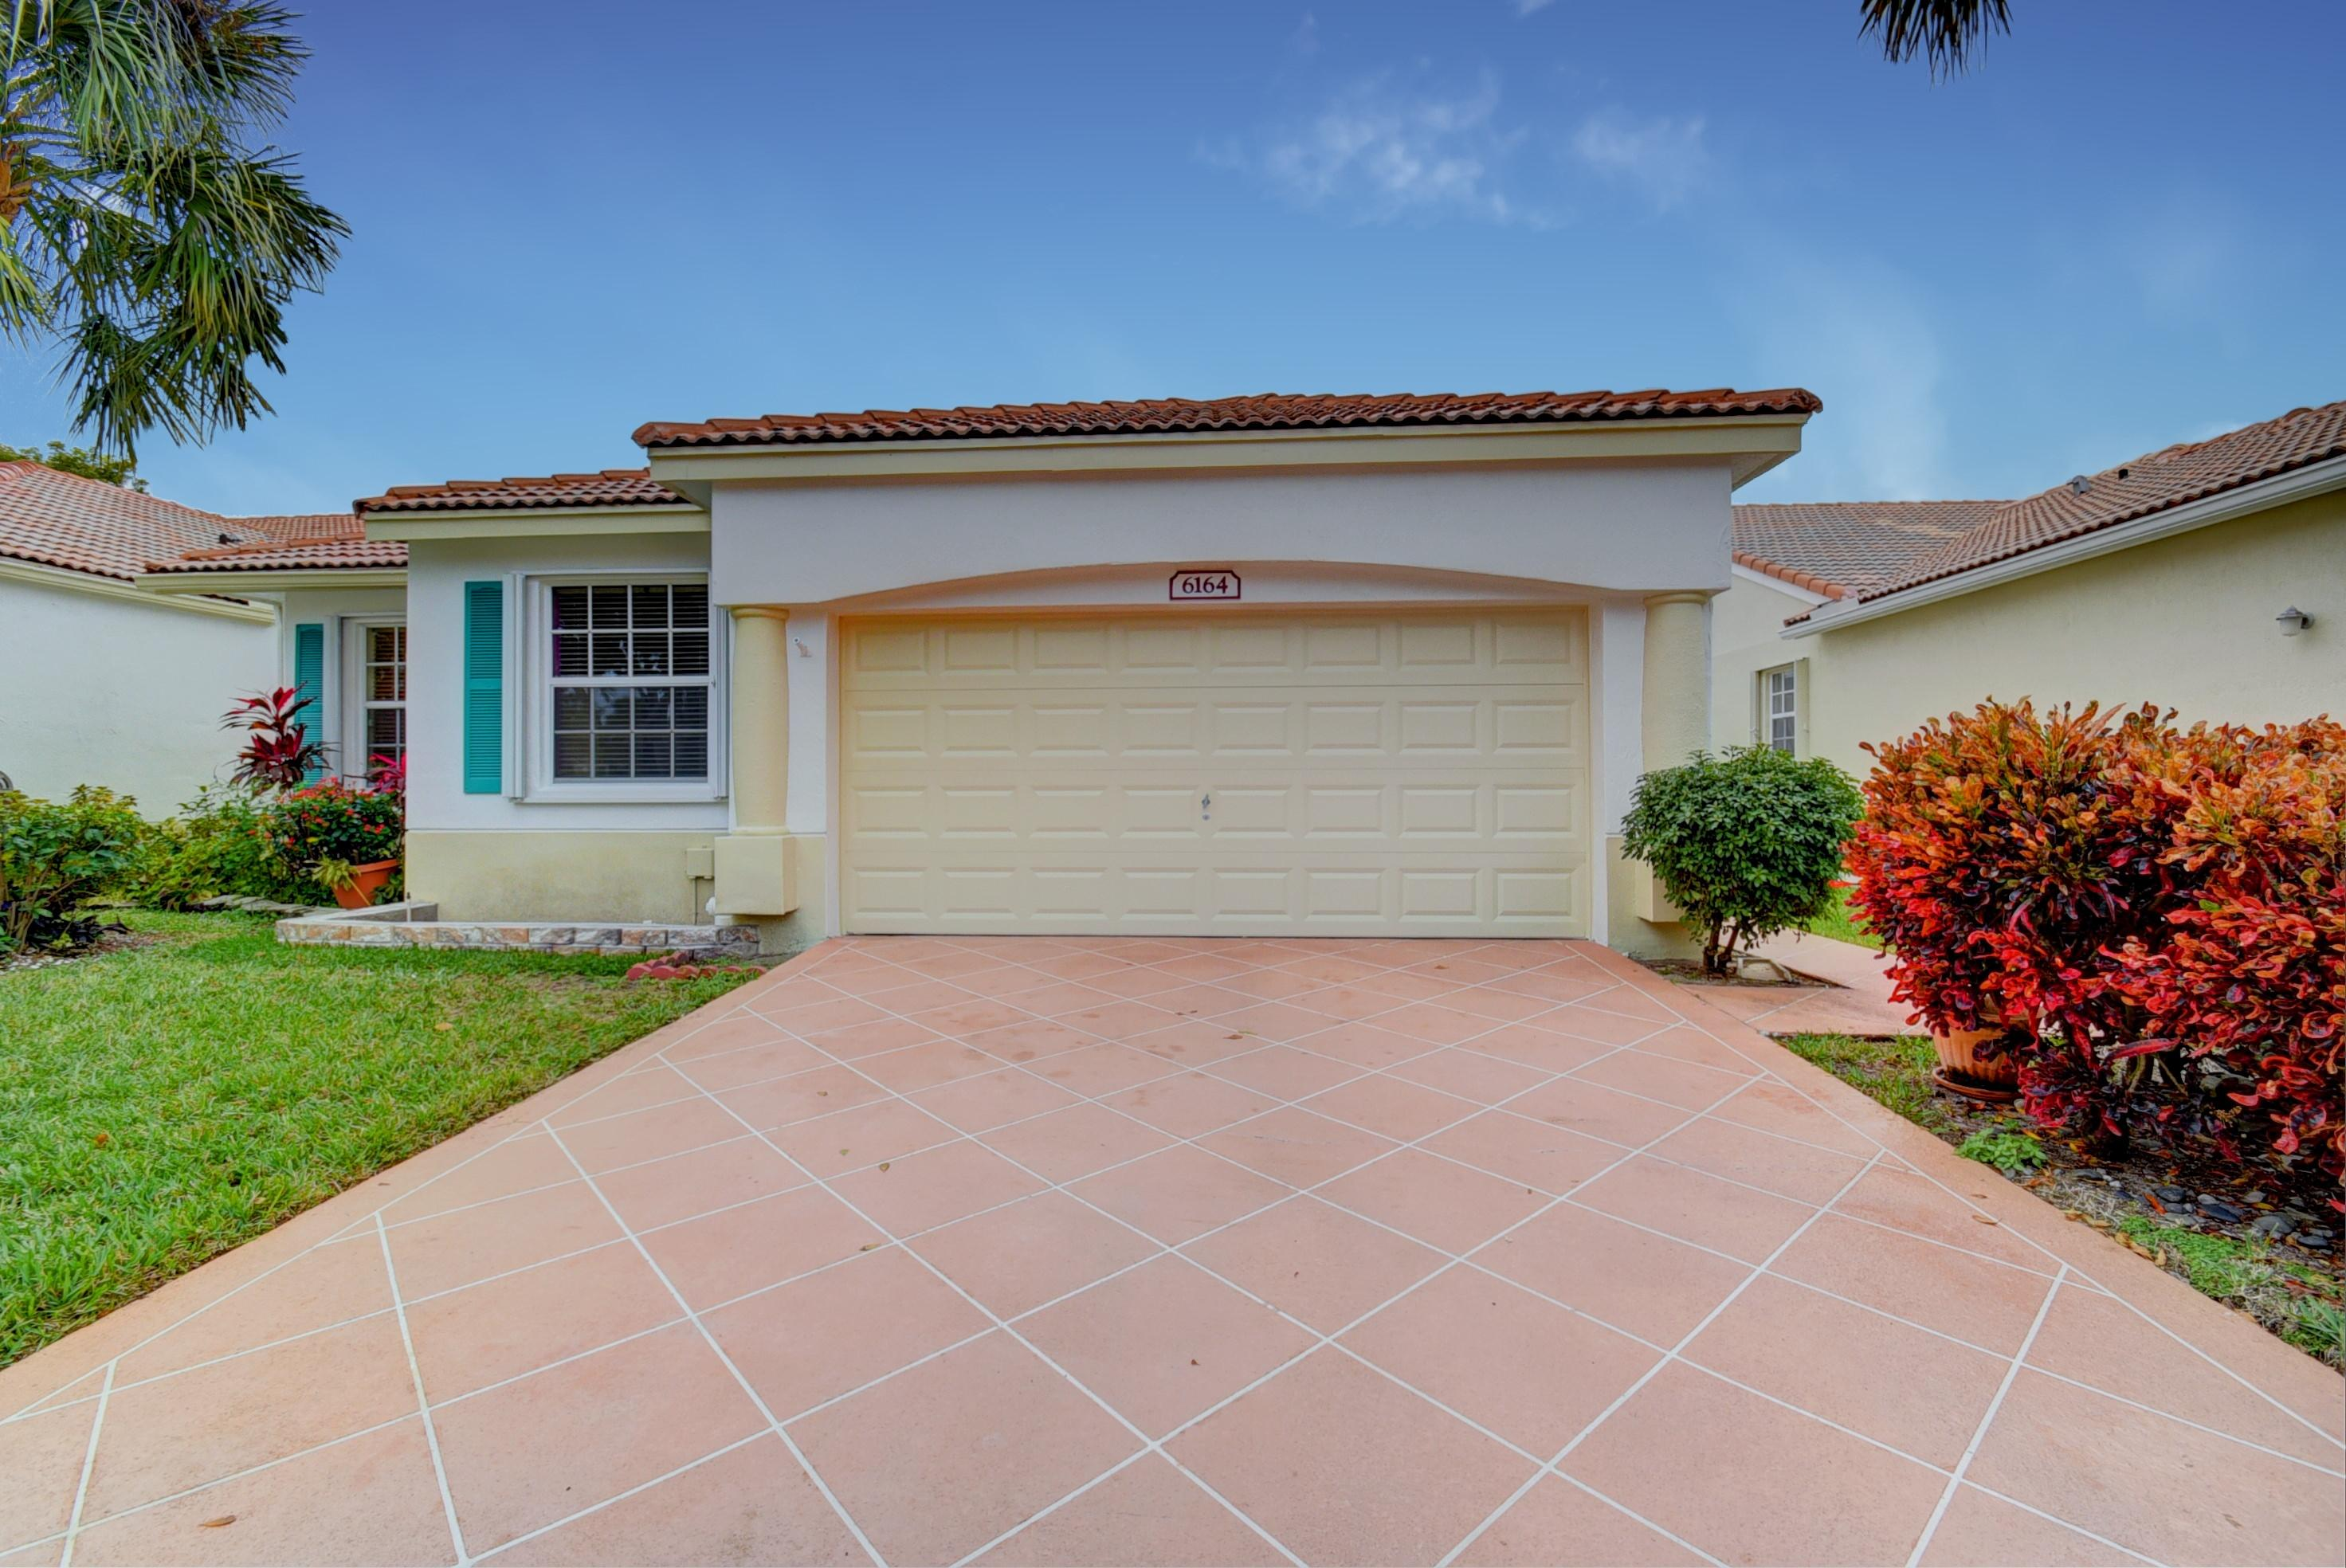 FLORAL LAKES PH 3 AND 4 home 6164 Petunia Road Delray Beach FL 33484